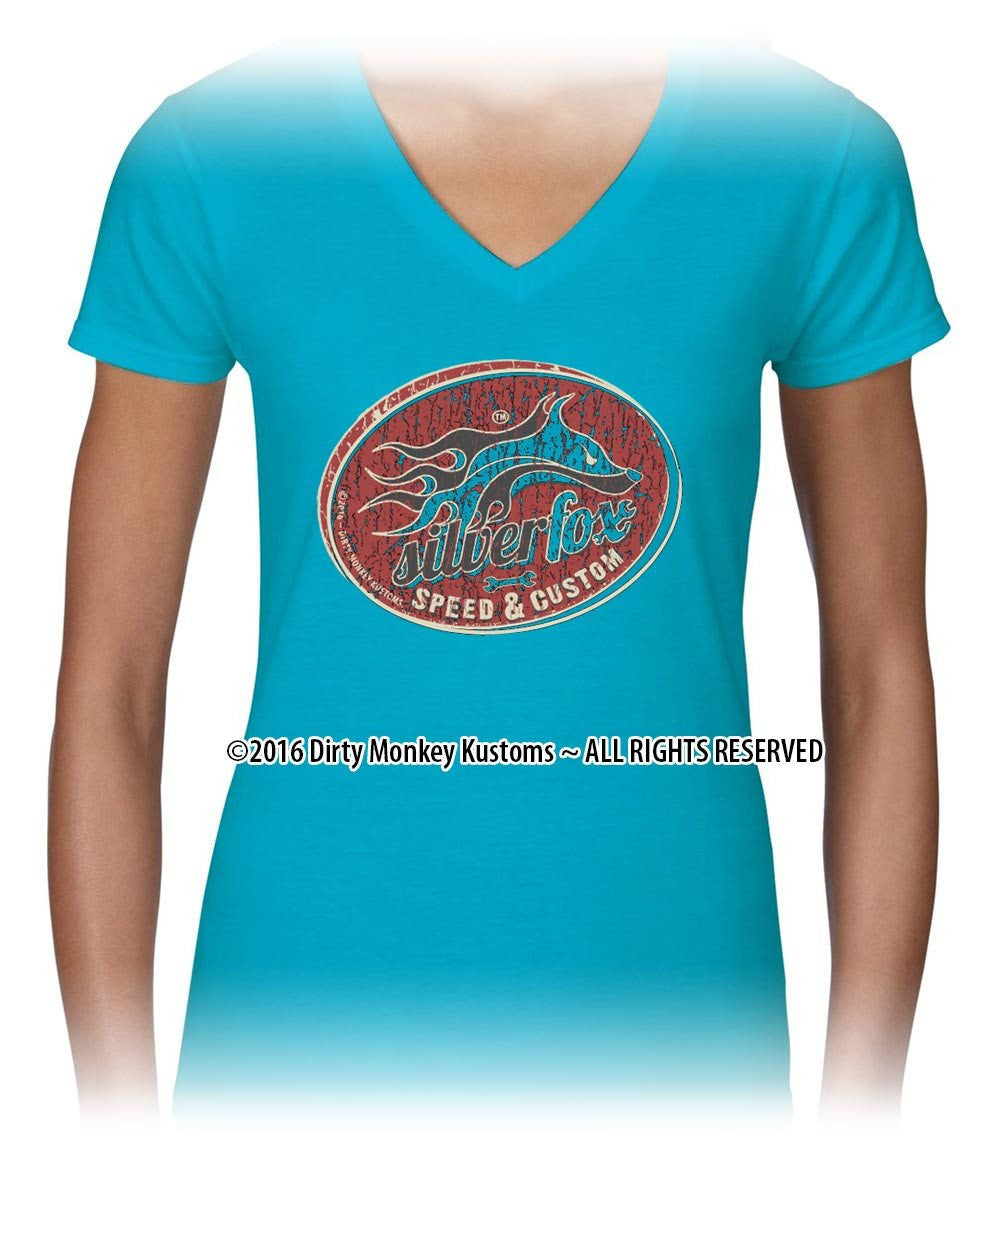 """Silver Fox"" Women's Hot Rodder t shirt - - Dirty Monkey Kustoms USA"